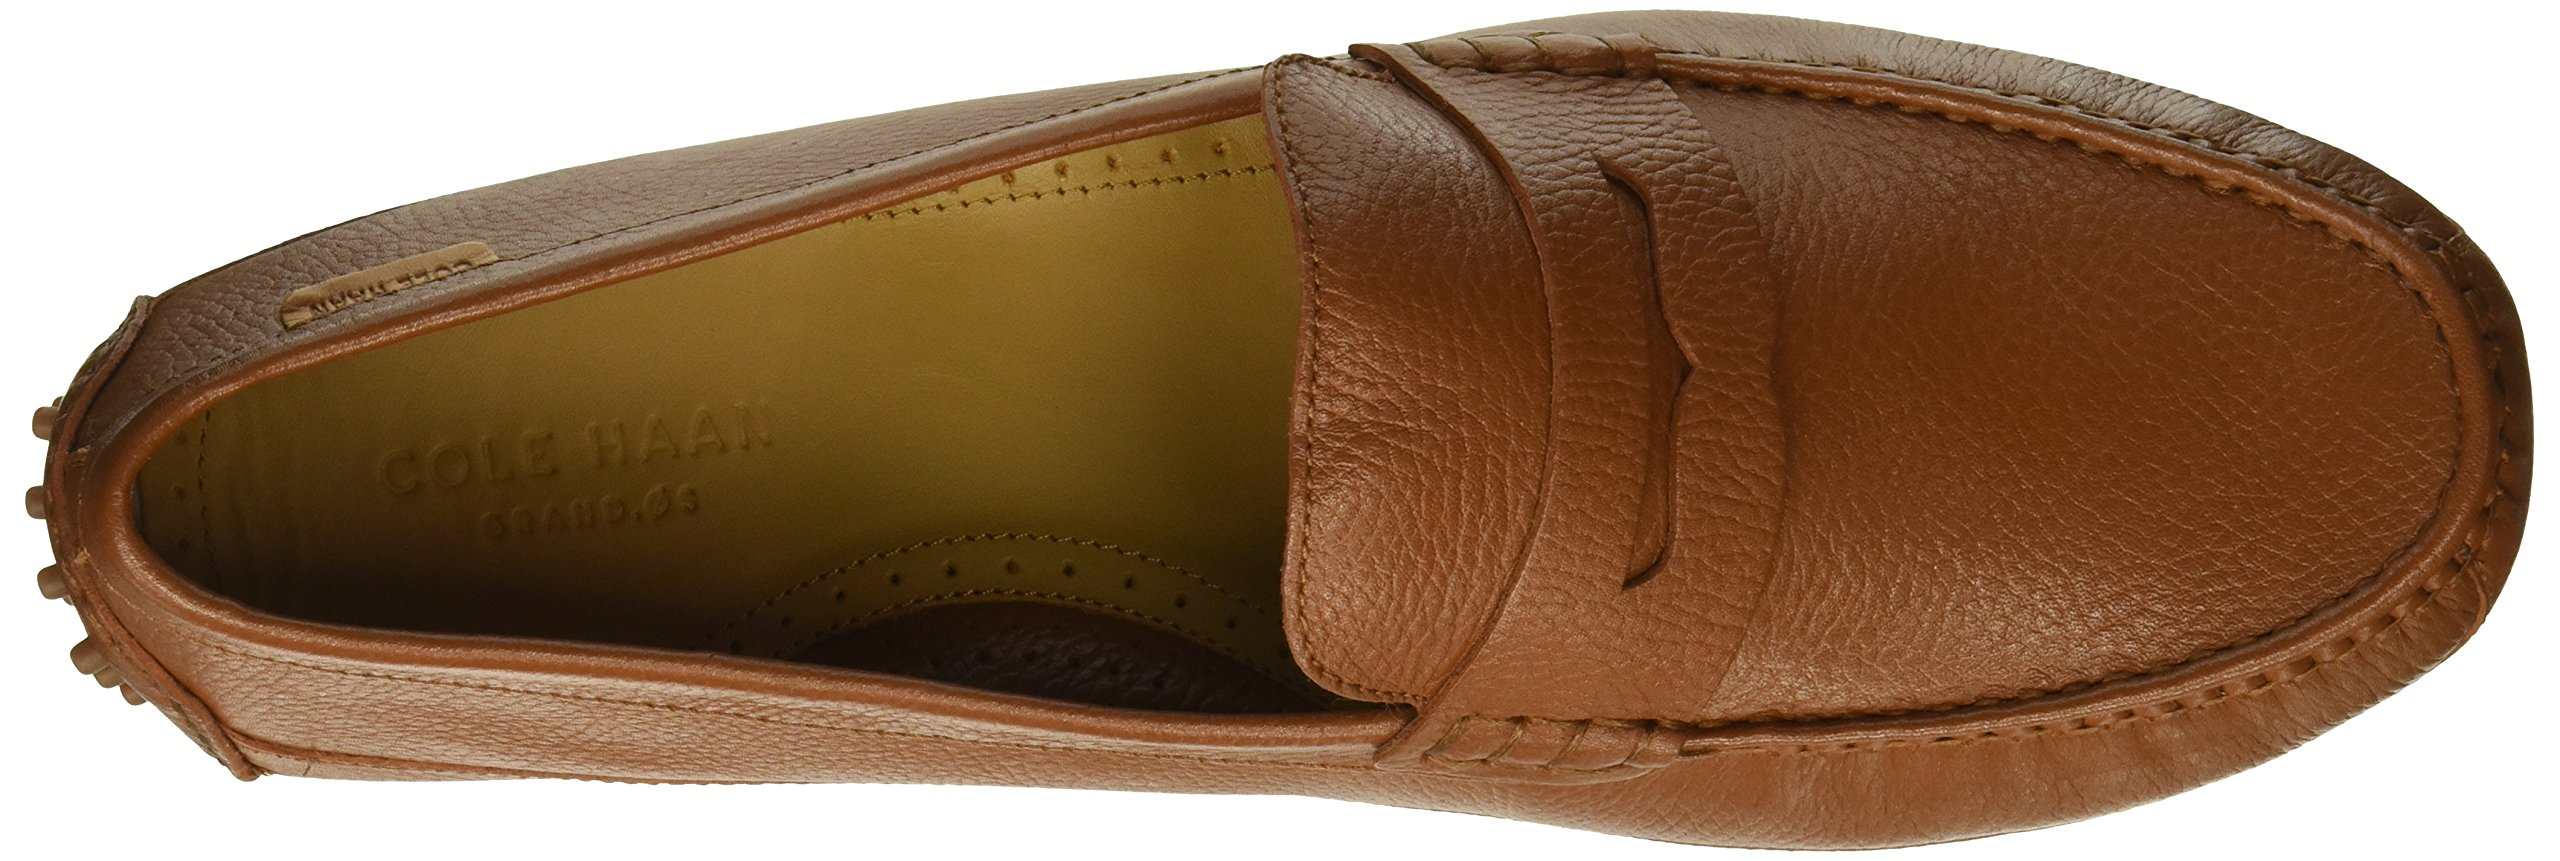 58bee648bc6 Cole Haan Men s Coburn Penny Driver Ii Loafer - C27348   Shoes   Clothing